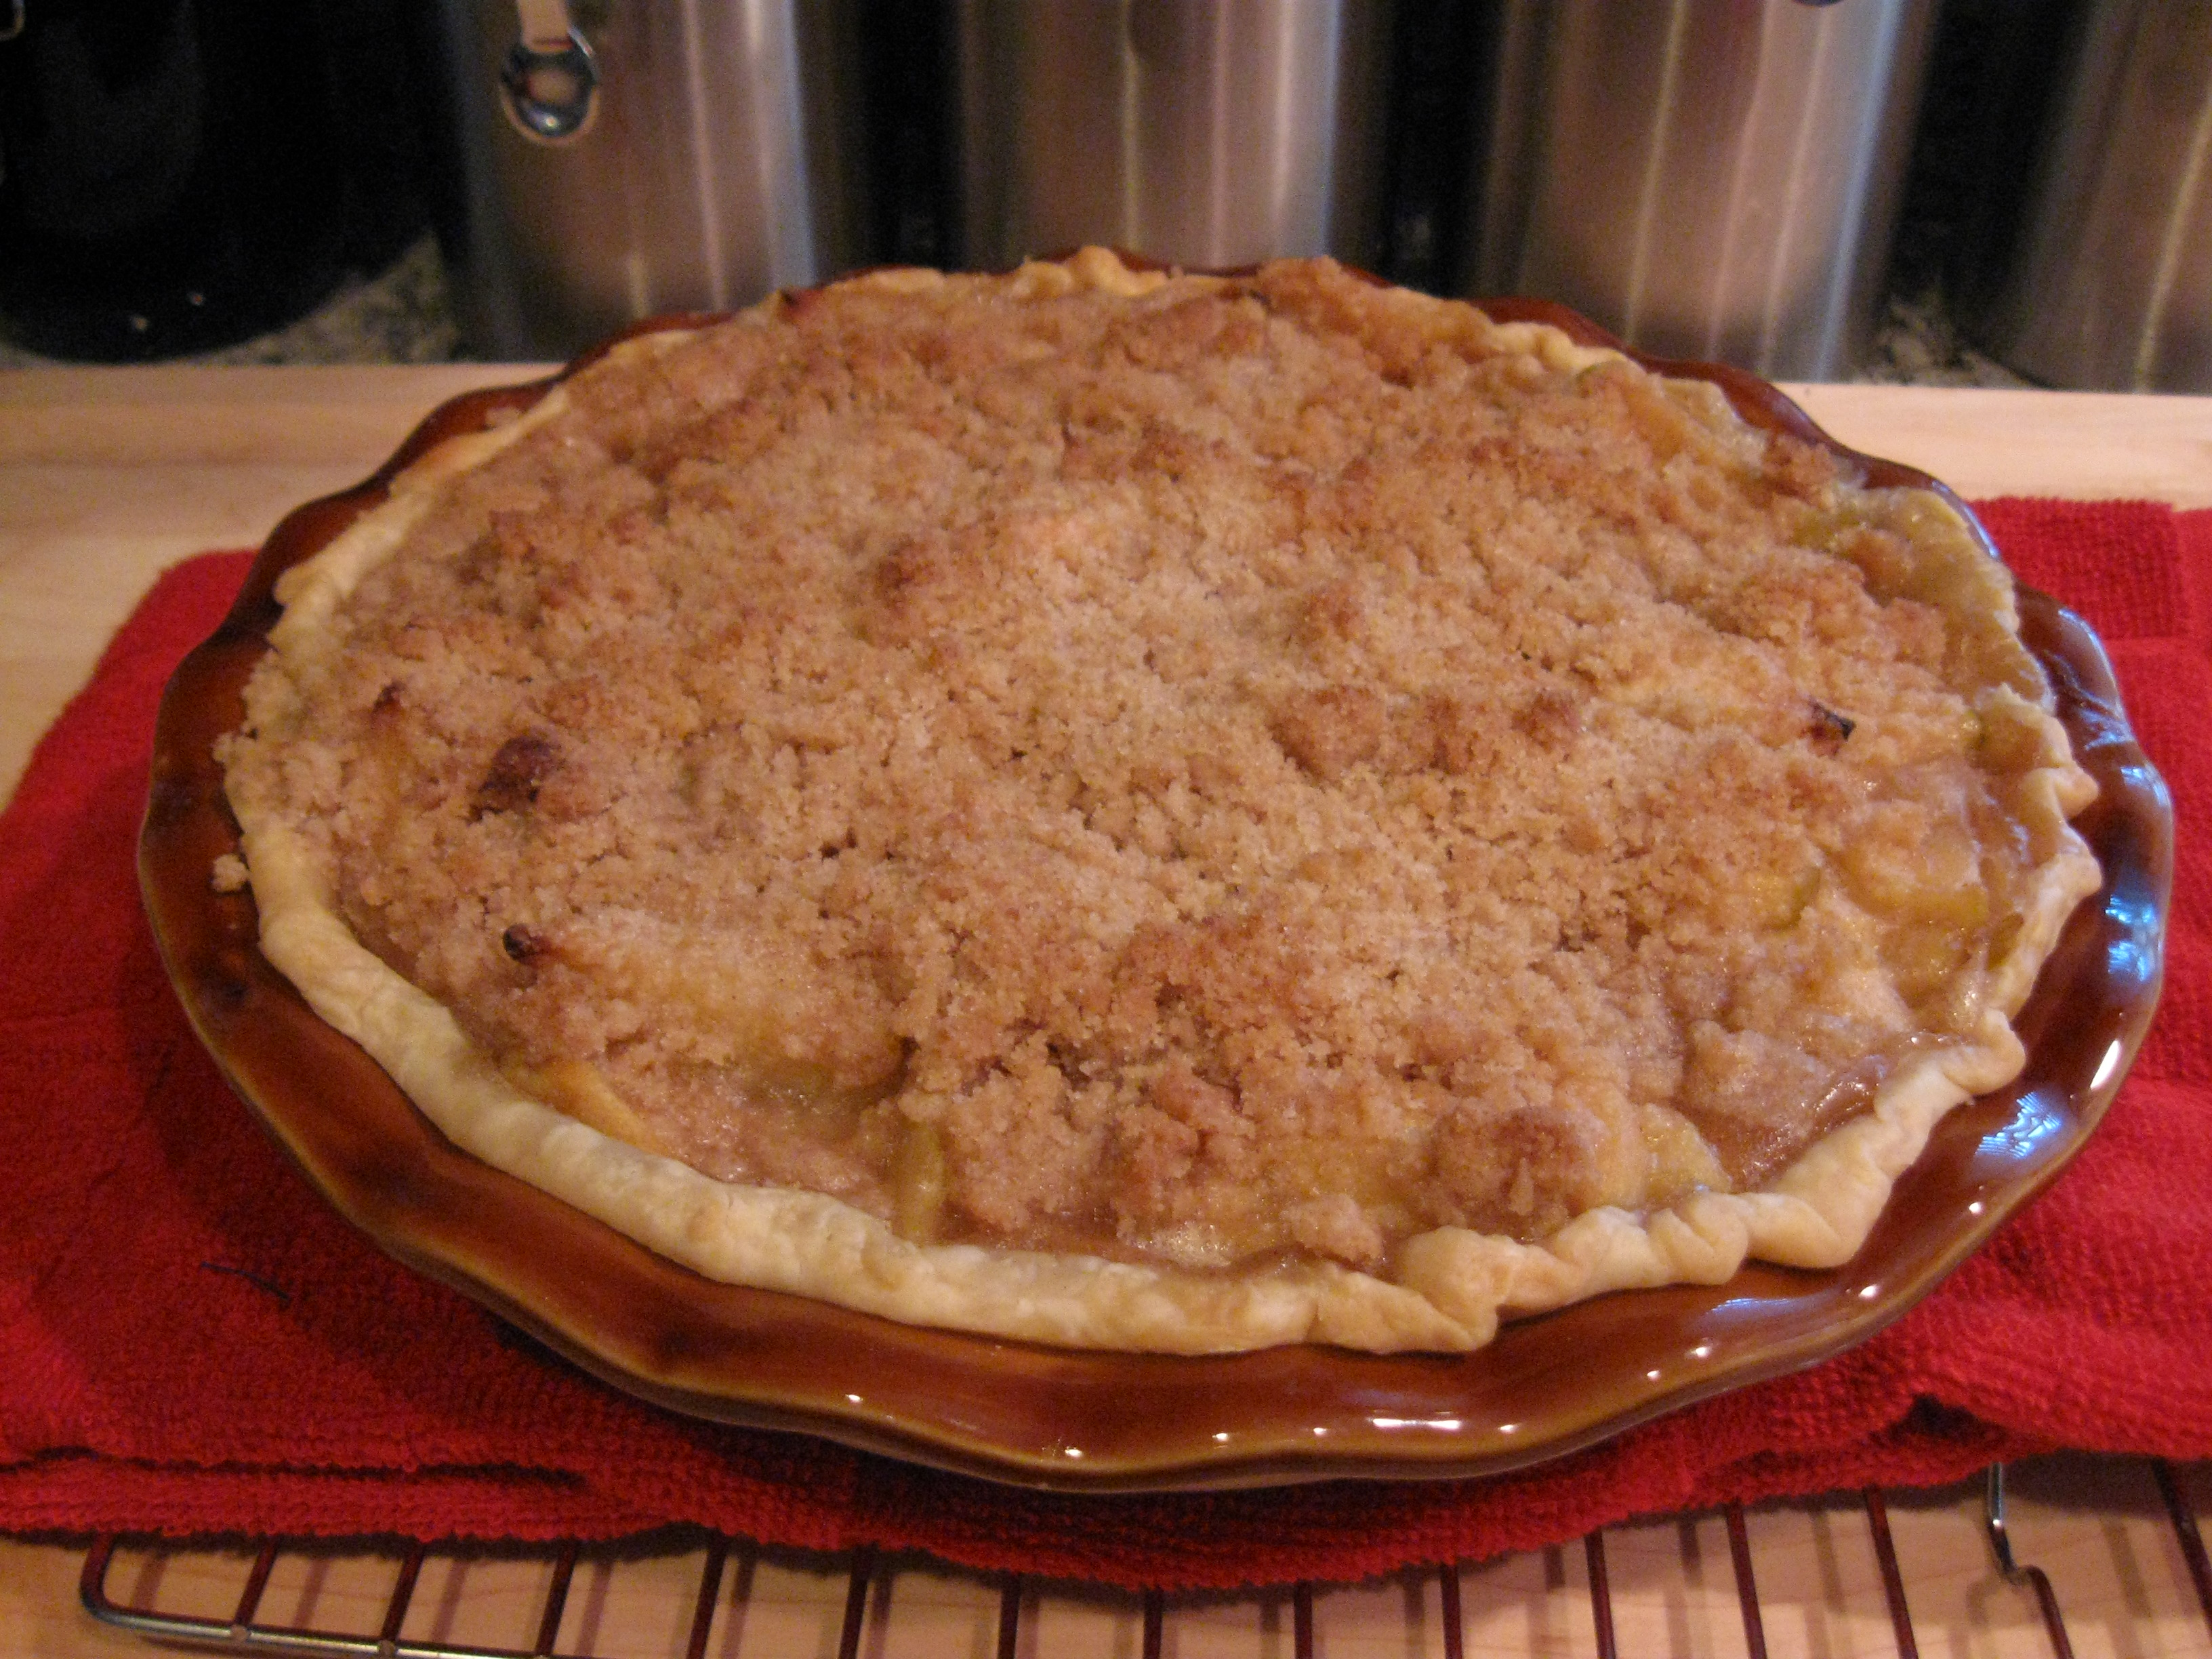 The apple pie I baked...